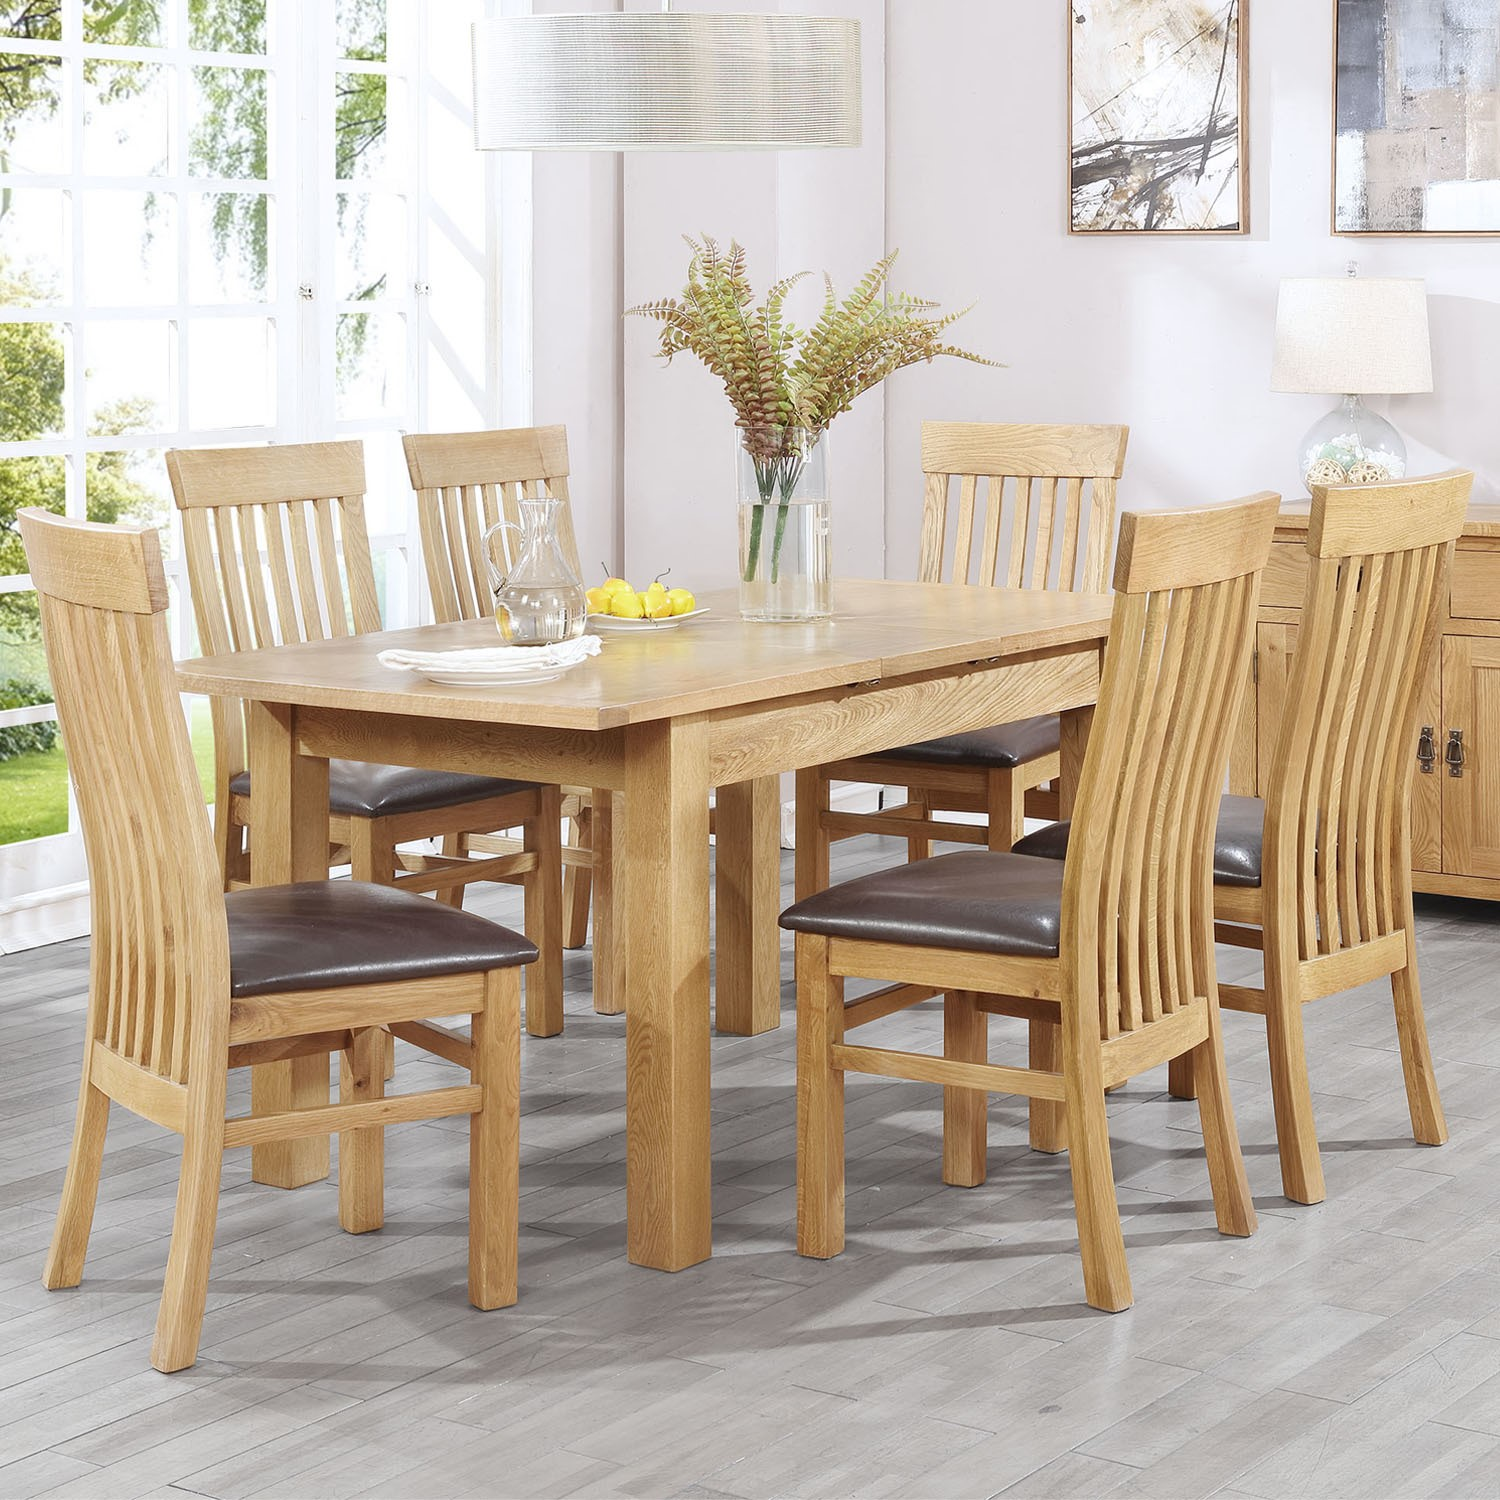 Wondrous Extendable Solid Oak Dining Table And 6 Chairs Rustic Saxon Range Squirreltailoven Fun Painted Chair Ideas Images Squirreltailovenorg